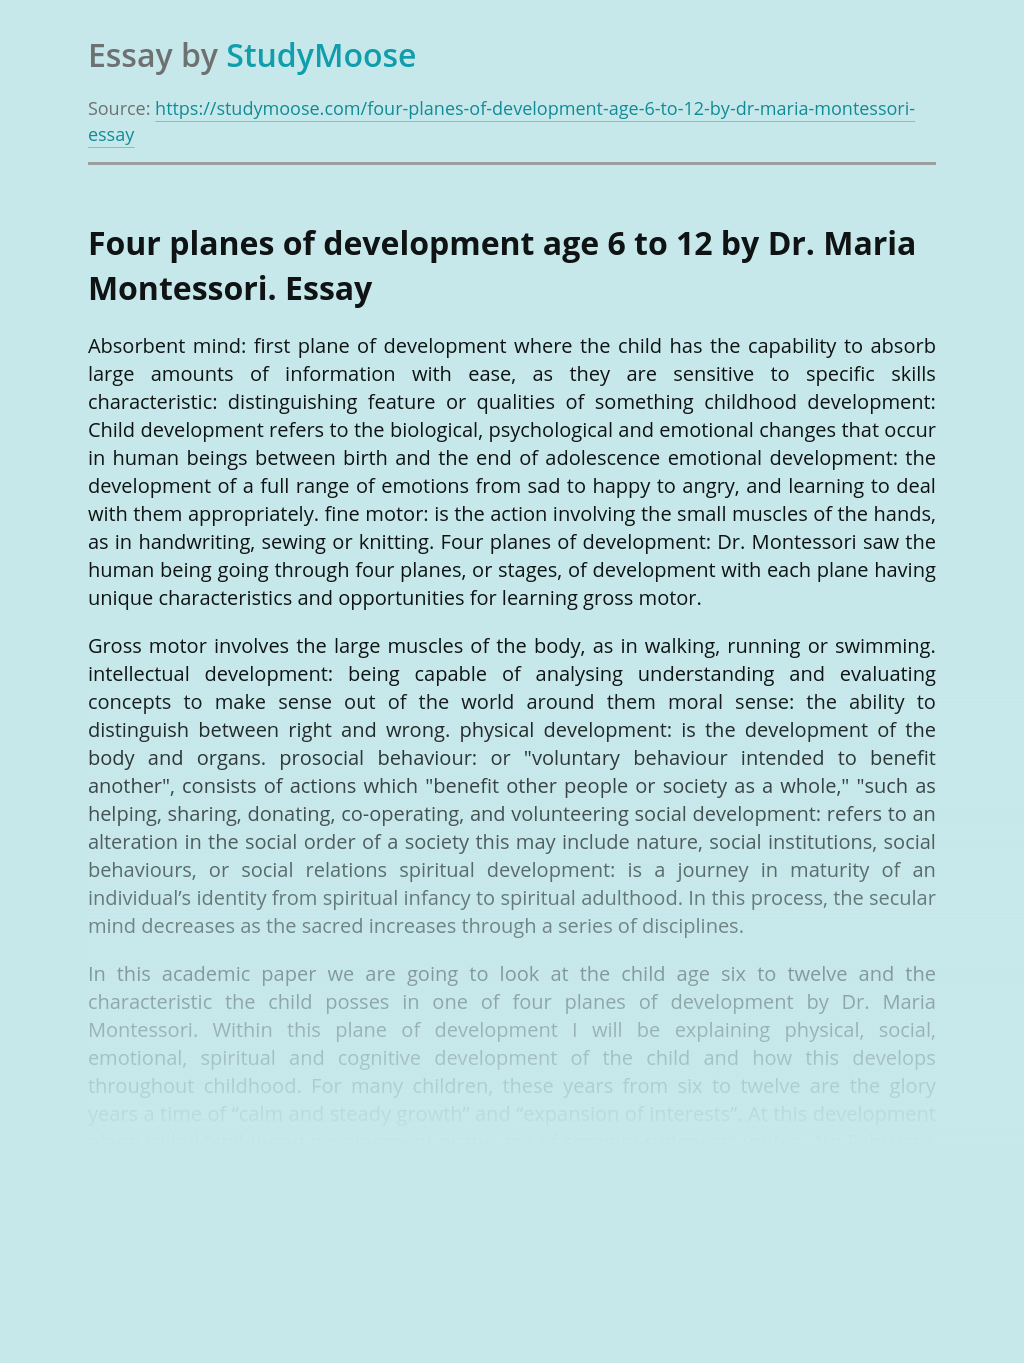 Four planes of development age 6 to 12 by Dr. Maria Montessori.